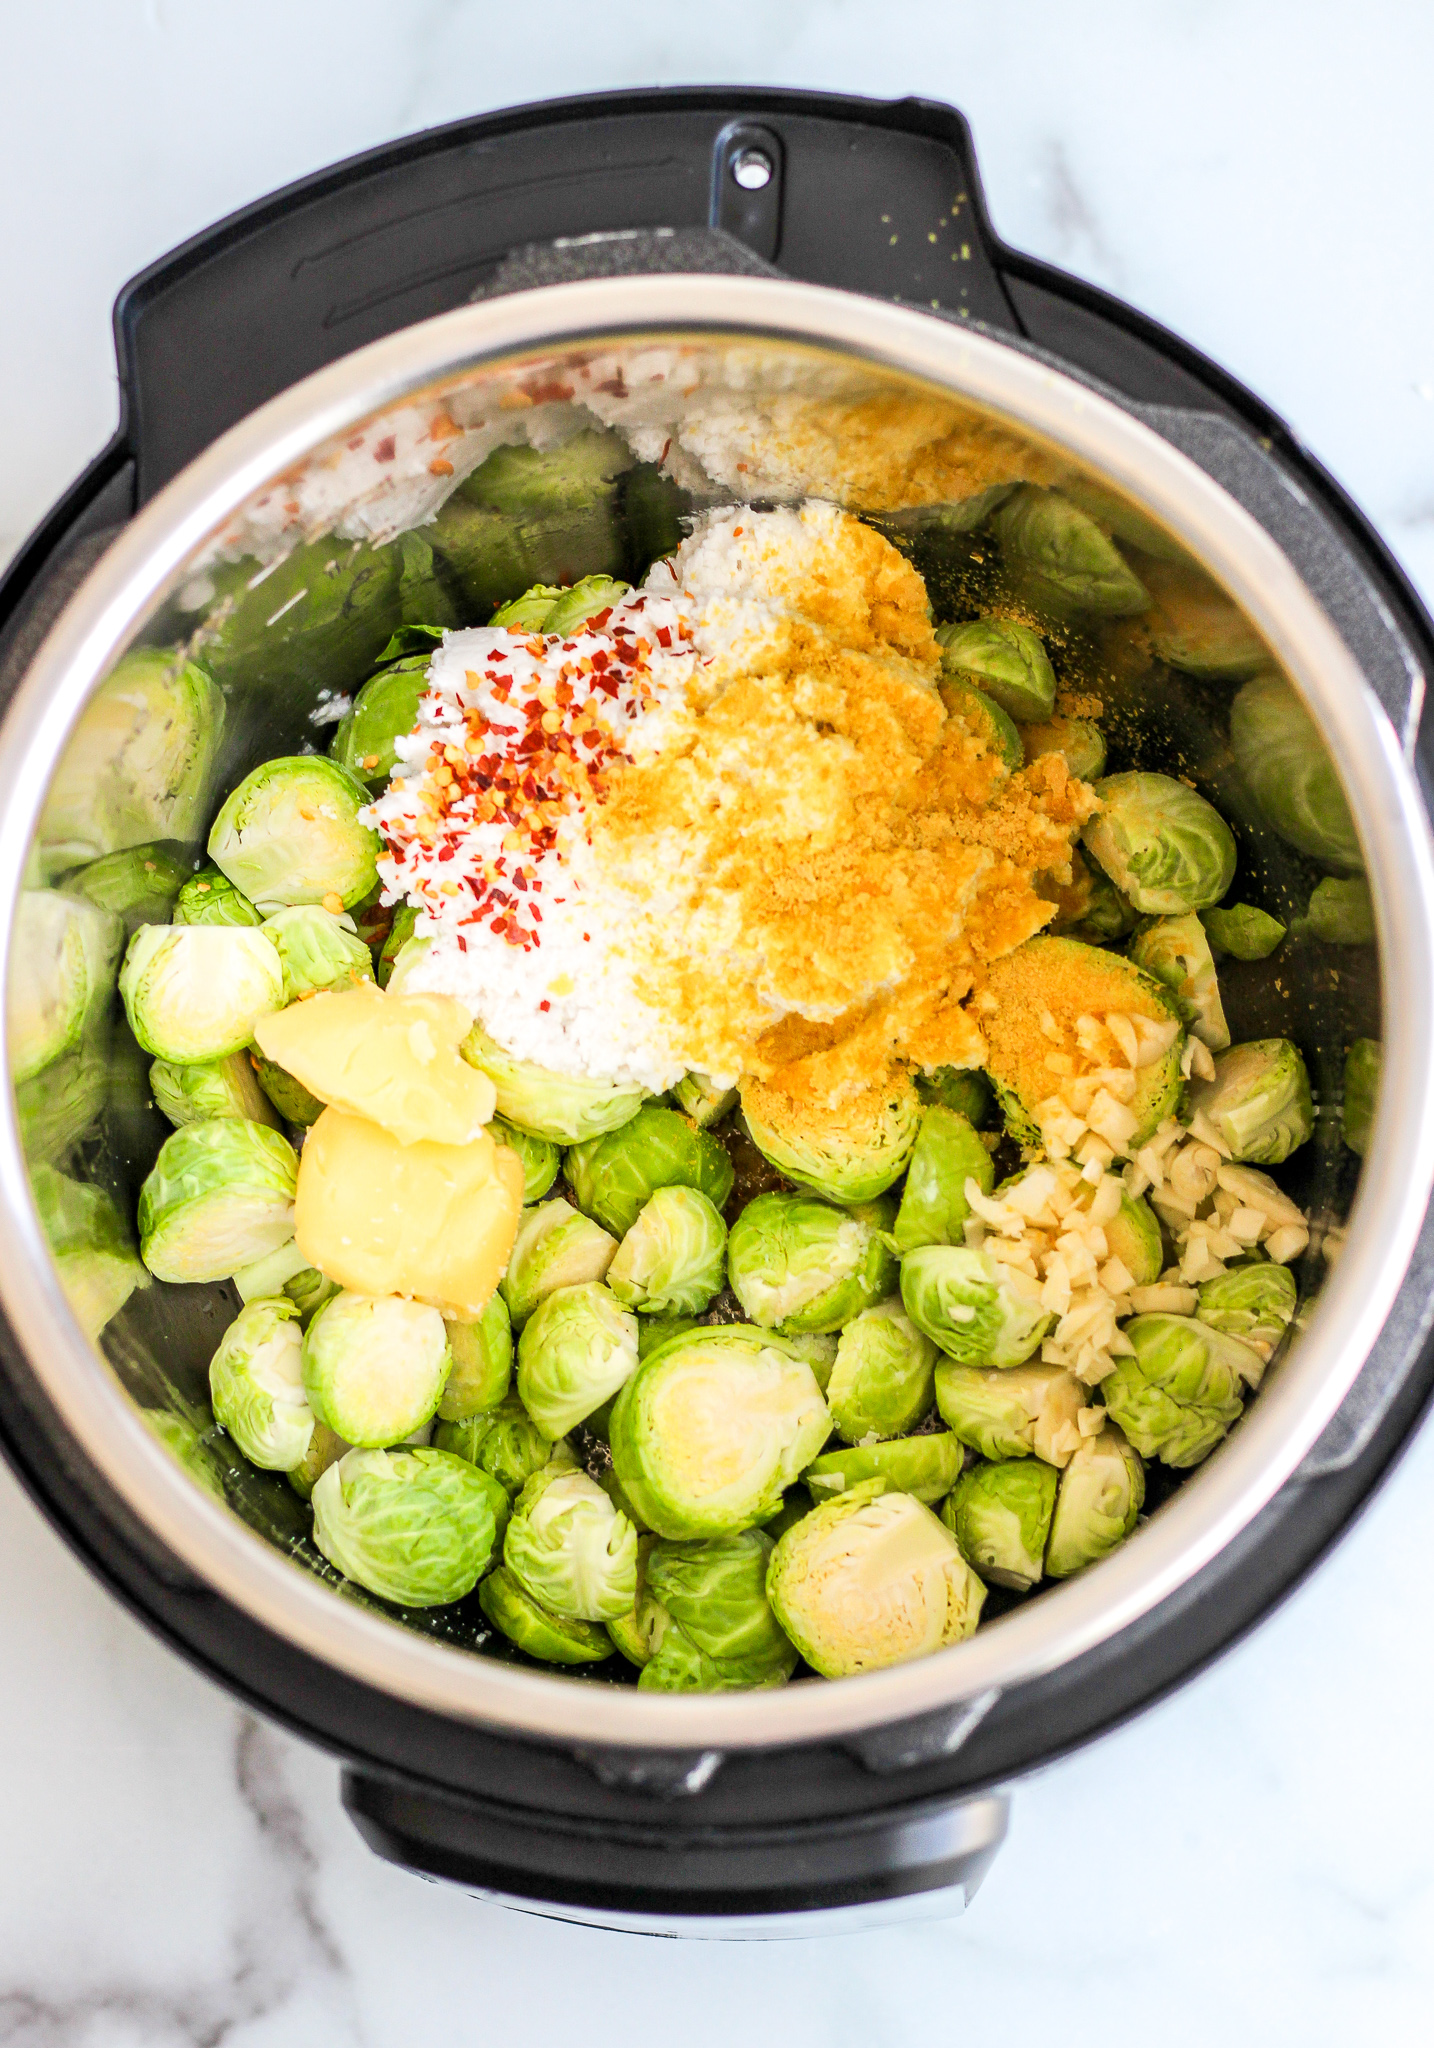 Creamy 'Cheesy' Instant Pot Brussels Sprouts